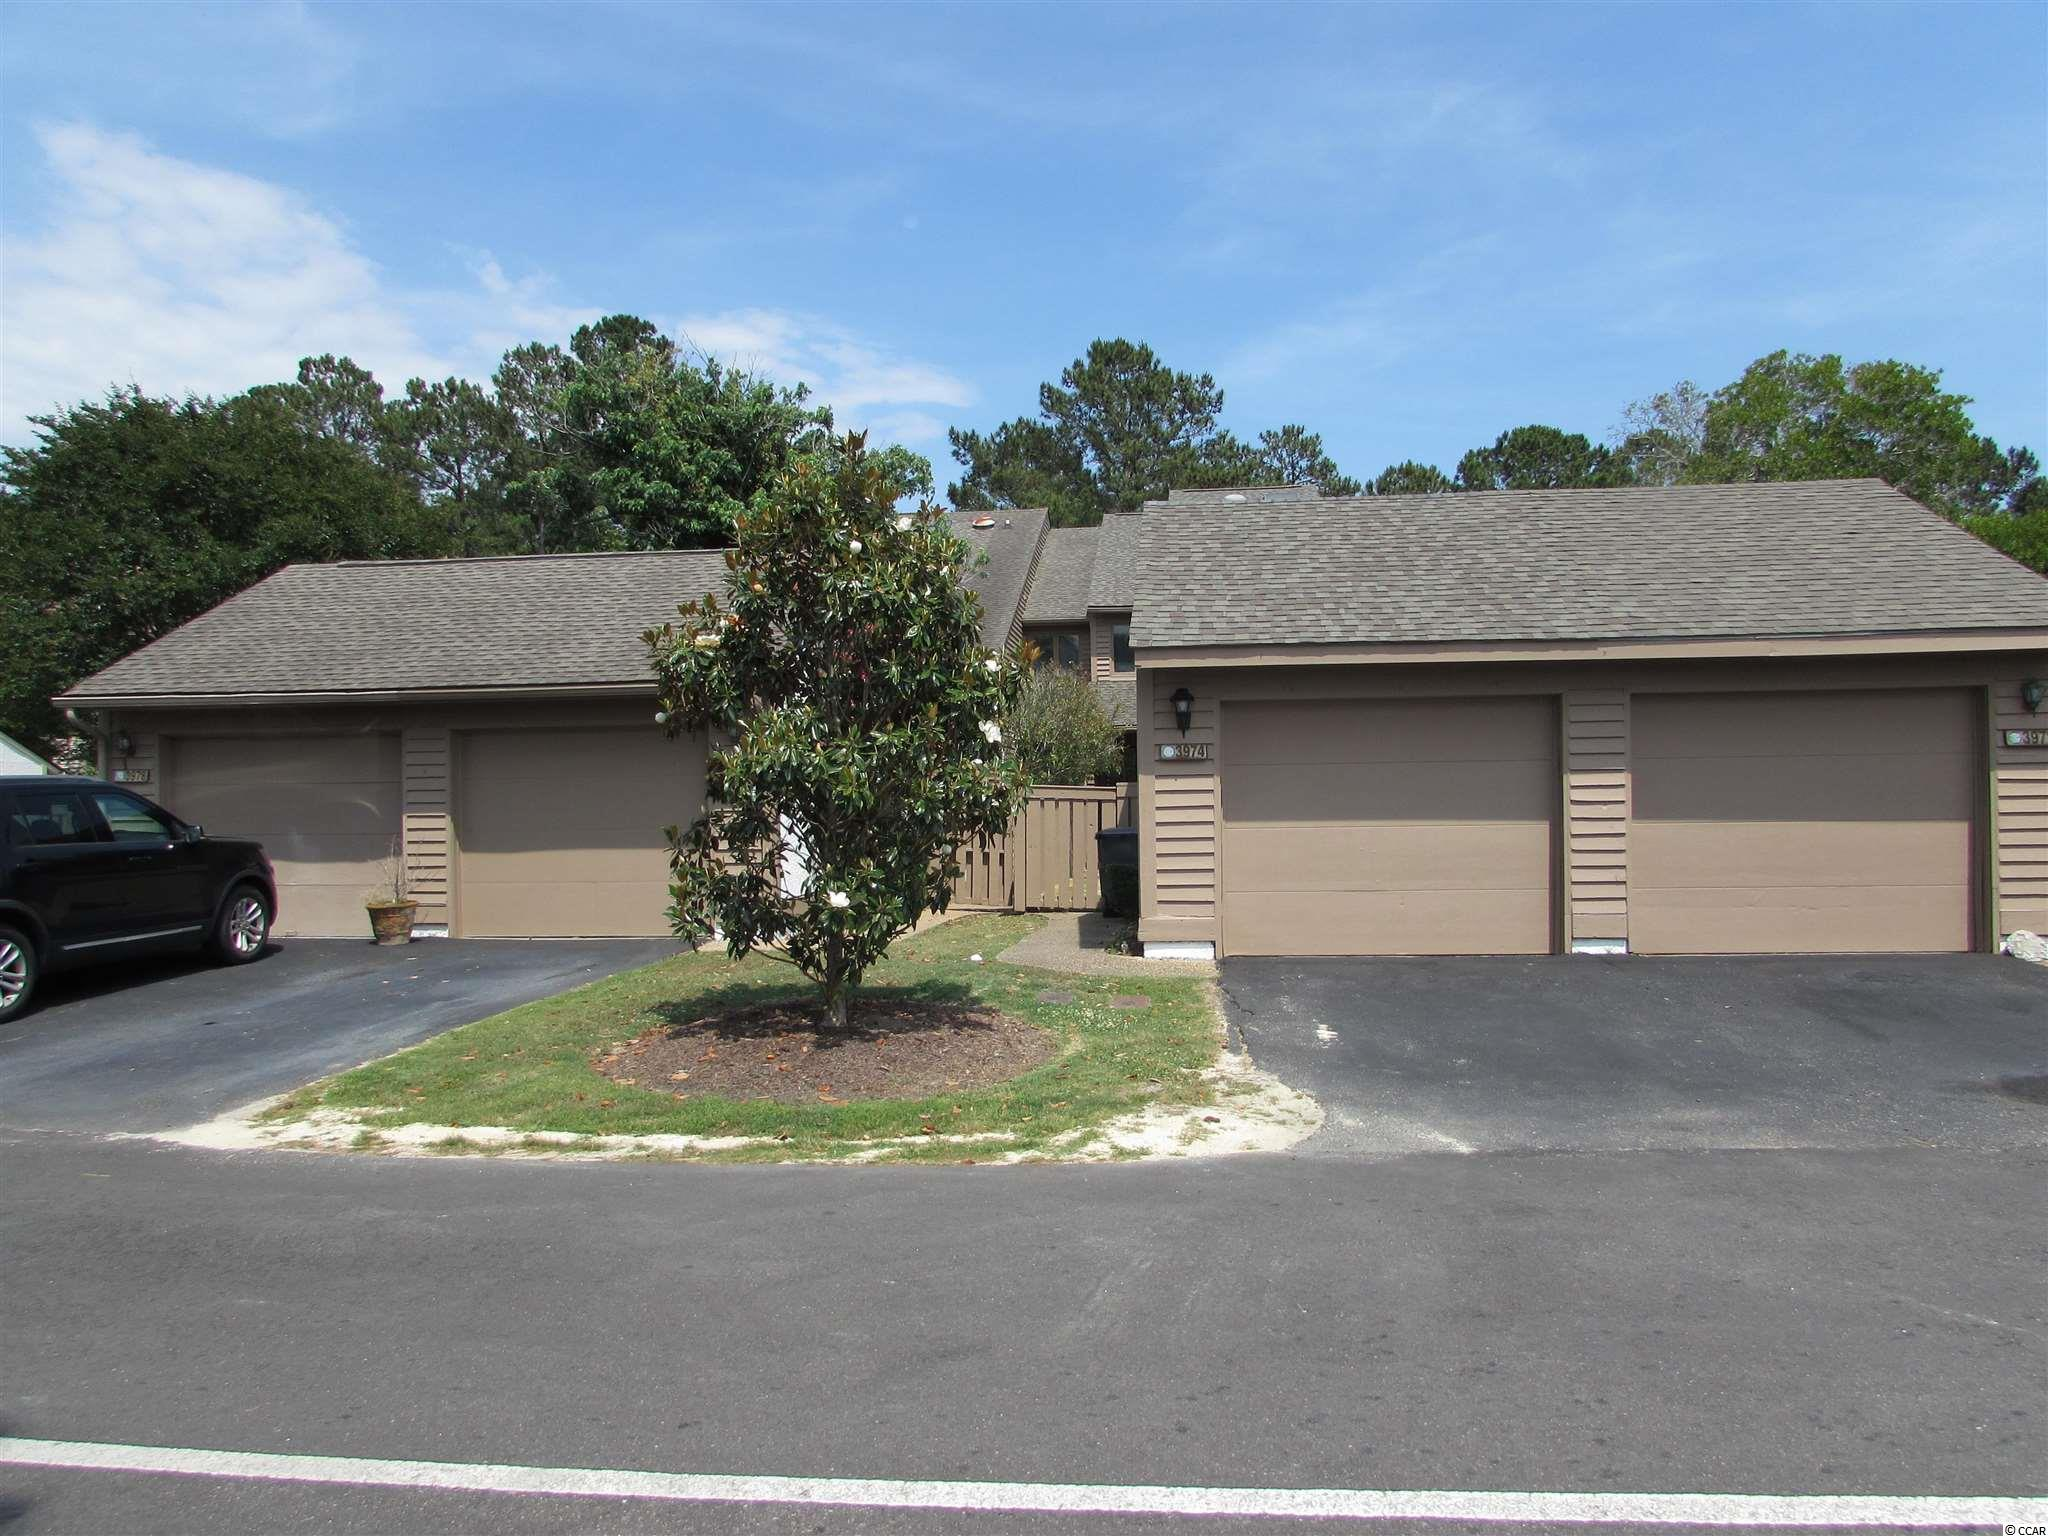 Come see your future home that has been fully remodeled and updated. Including making it all structurally sound with the sub floor and the whole crawl space fully encapsulated. Comes with a fully transferable warranty on the encapsulating work. This townhouse sits in the middle of fairway #1 on the Palmetto golf course. Hard surface flooring through out that makes it much easier to clean. Has all new appliances, cabinets, counter tops, fixtures and all freshly painted. All the extra unused space has been used to make closets, storage and pantry. The neighborhood has the tennis courts and the pool right across the way. So go get your swings in and then jump in the pool to cool off. This 3 bedroom, 3 full bath townhouse is close to all the Grand Strand has to offer. From beaches, airport, restaurants, hospitals, shopping, Broadway at the Beach, golf, etc. Don't miss this opportunity to own your own piece of heaven and book your showing today.